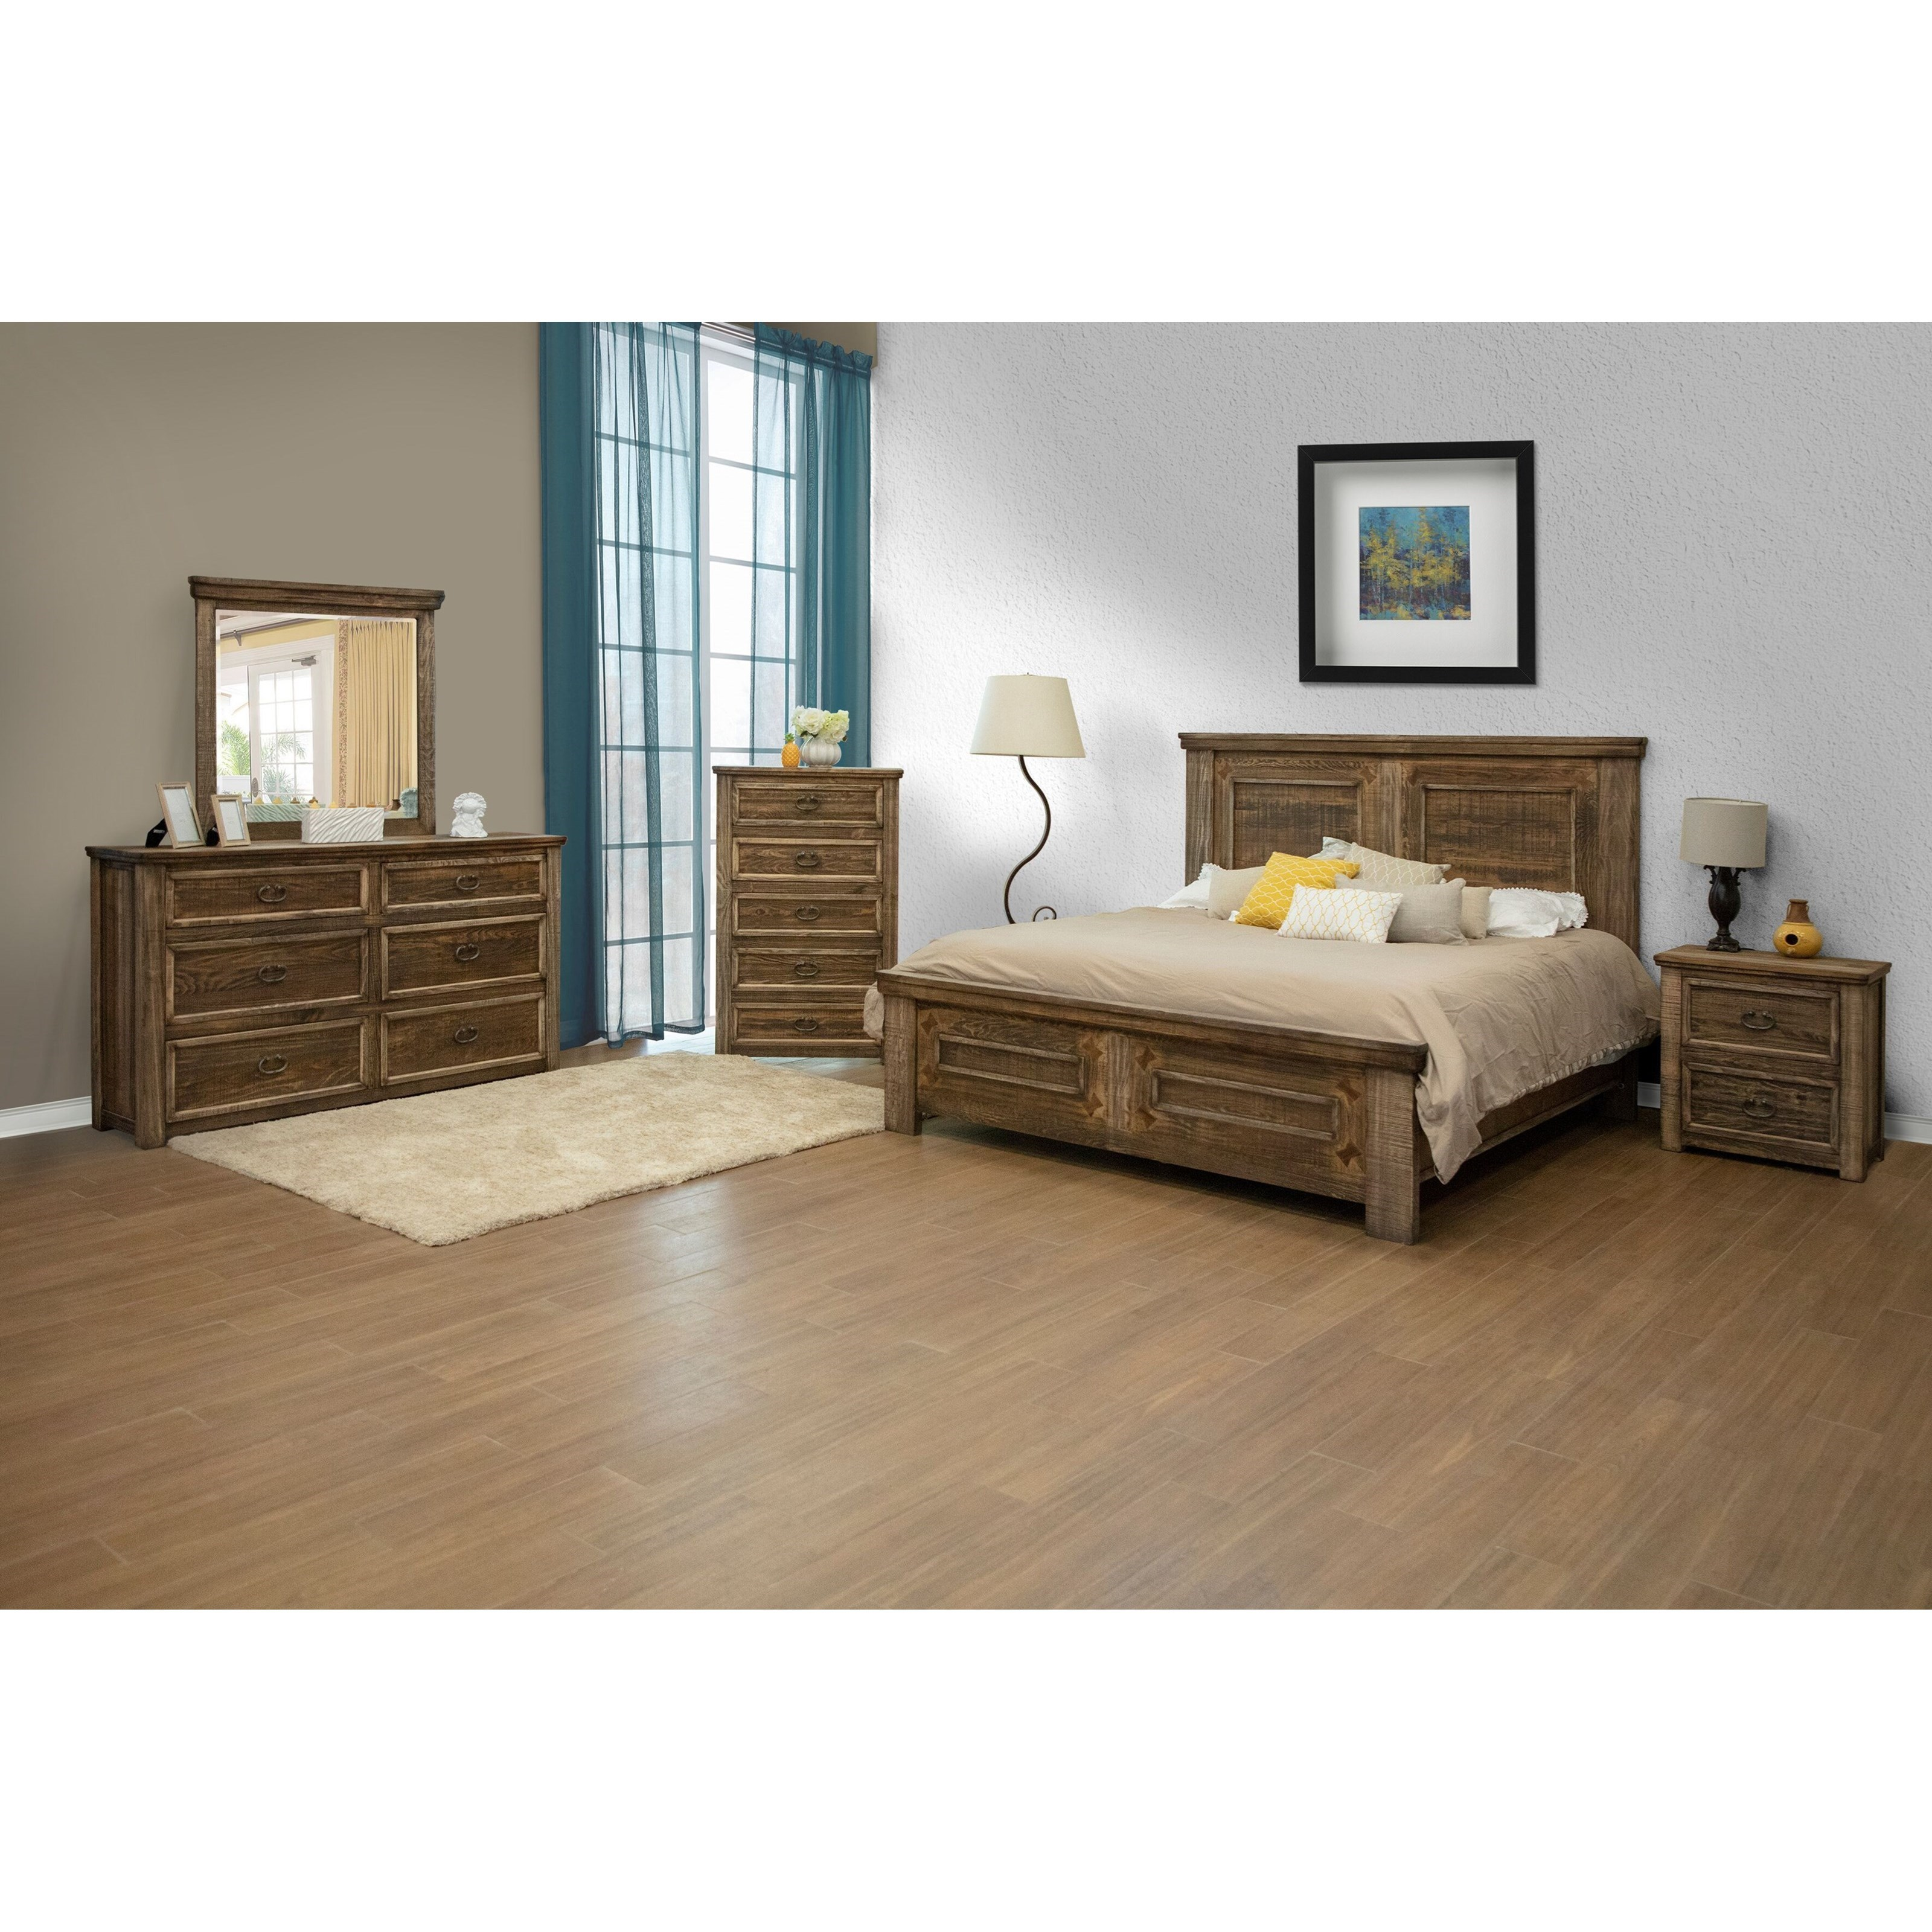 Montana King Bedroom Group by International Furniture Direct at Zak's Home